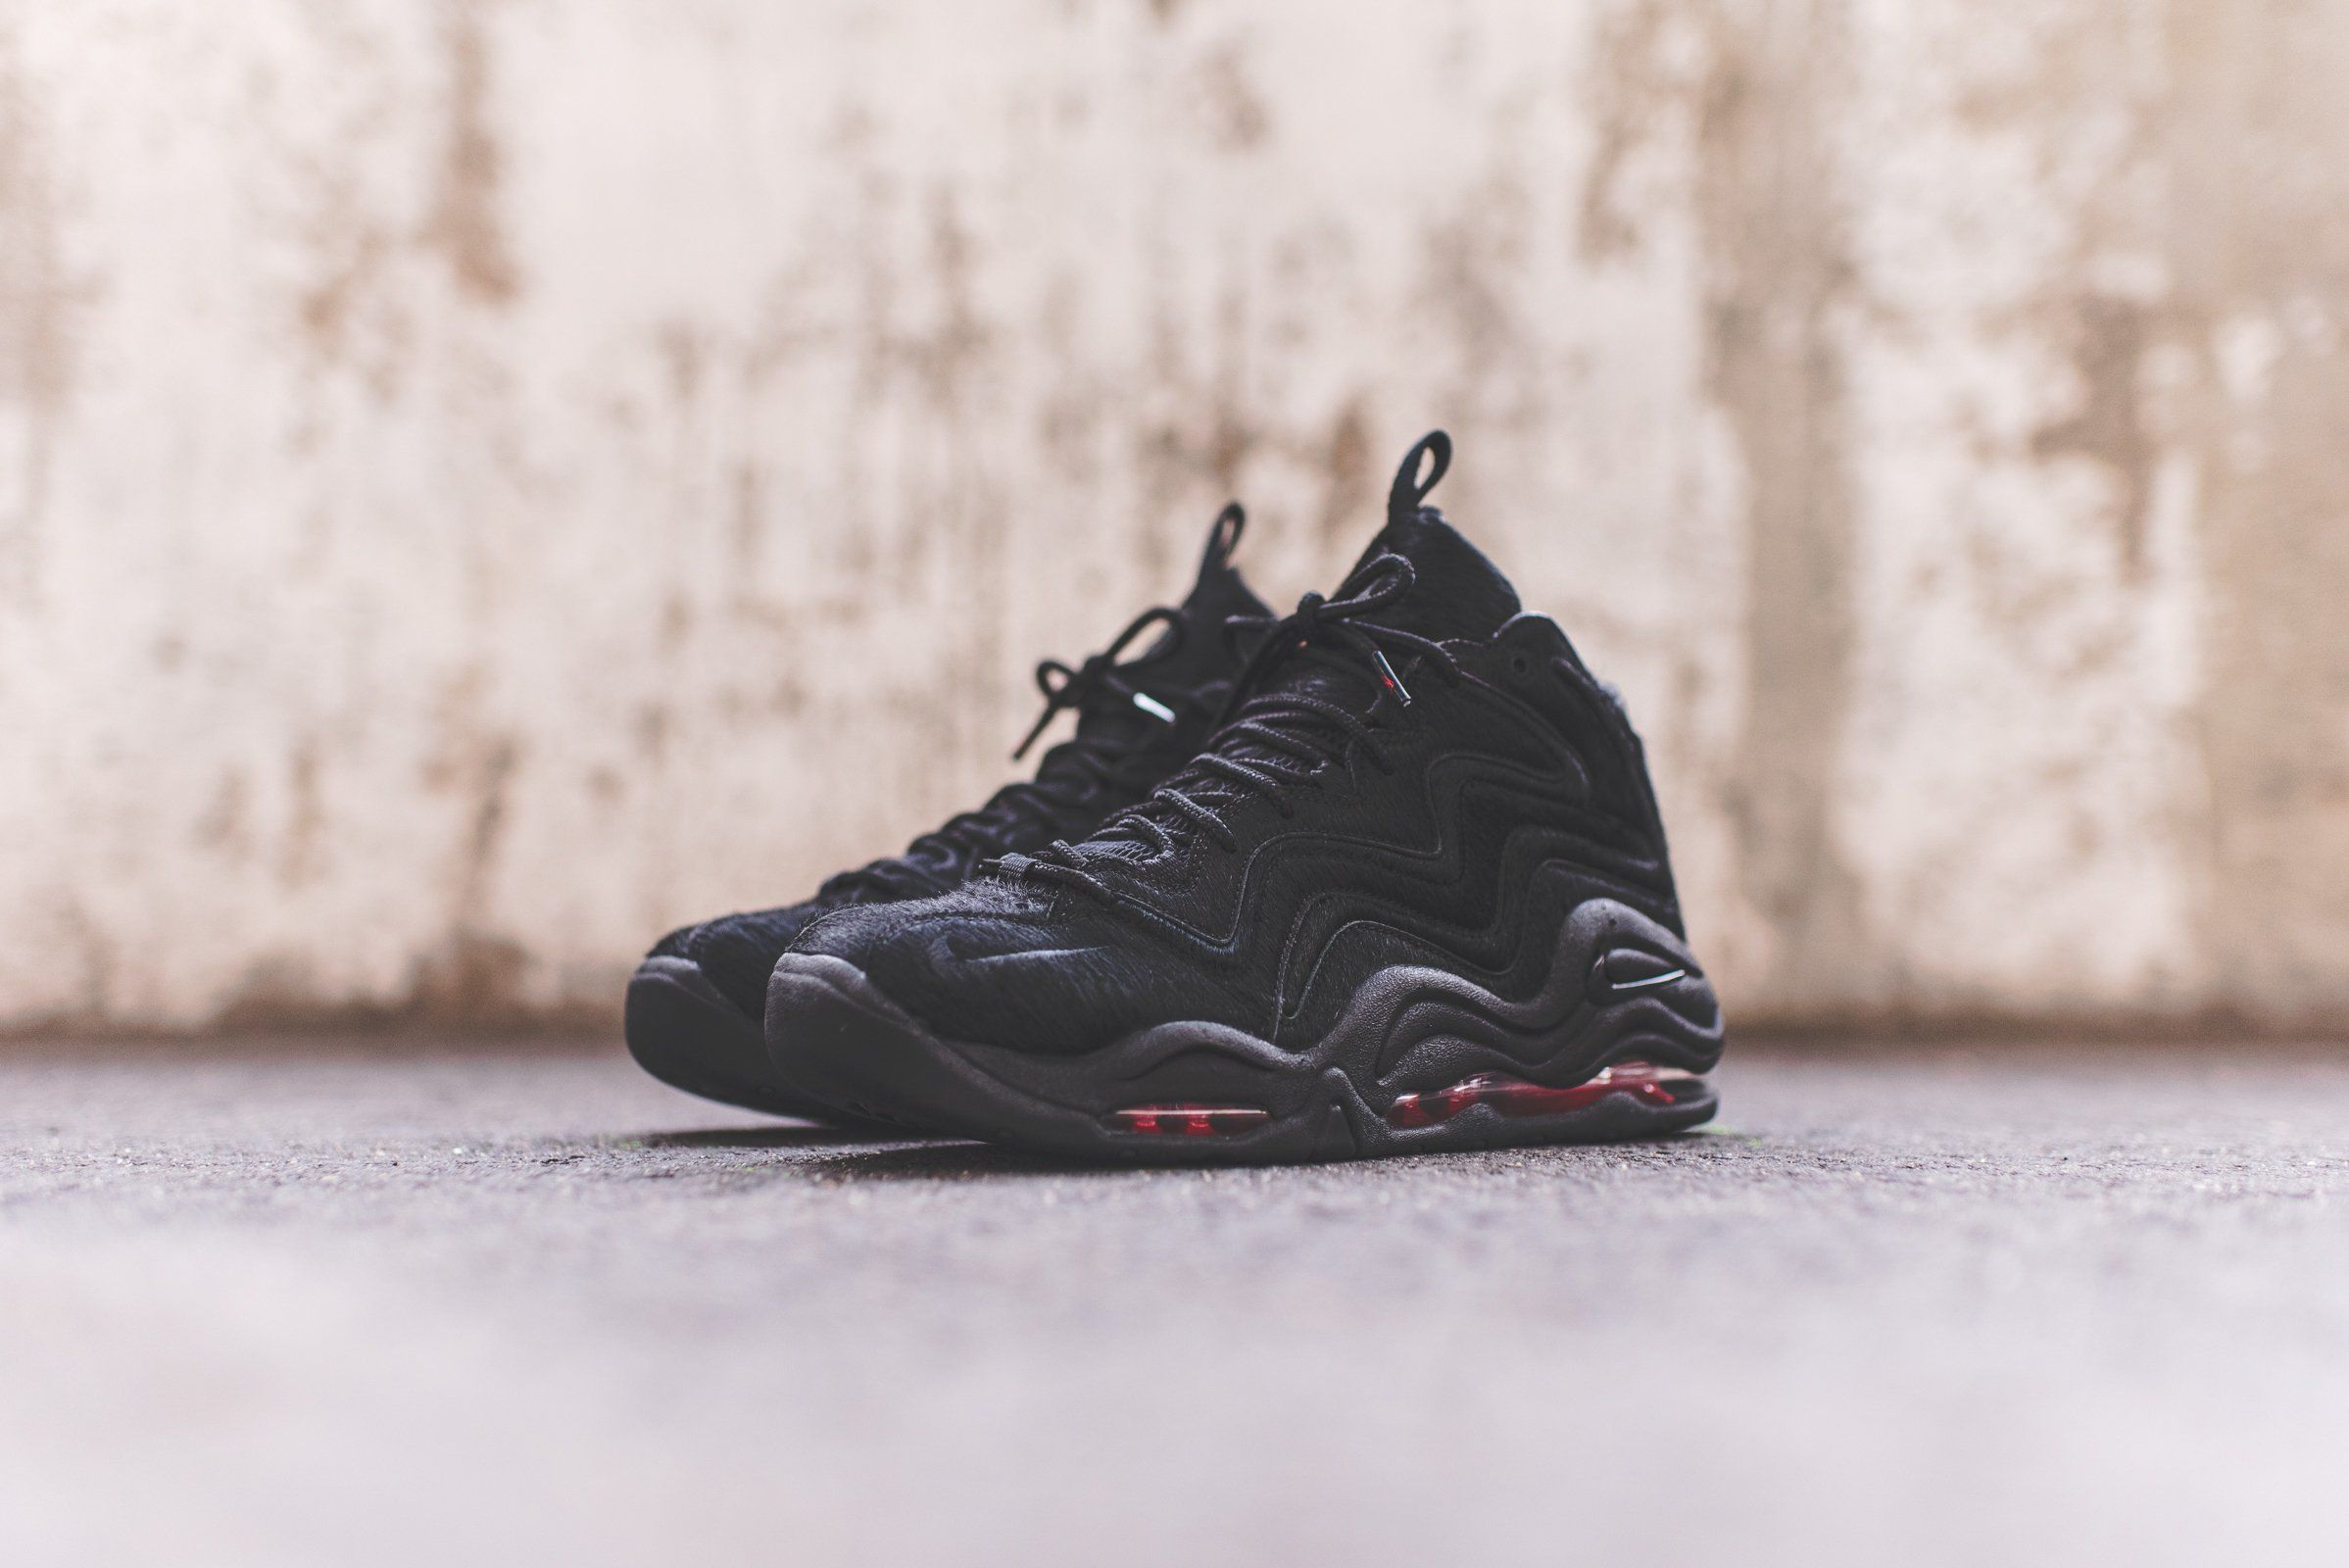 ad56bef91f2 Ronnie Fieg x Nike Air Pippen 1  Pony Hair  Pack - EU Kicks  Sneaker ...